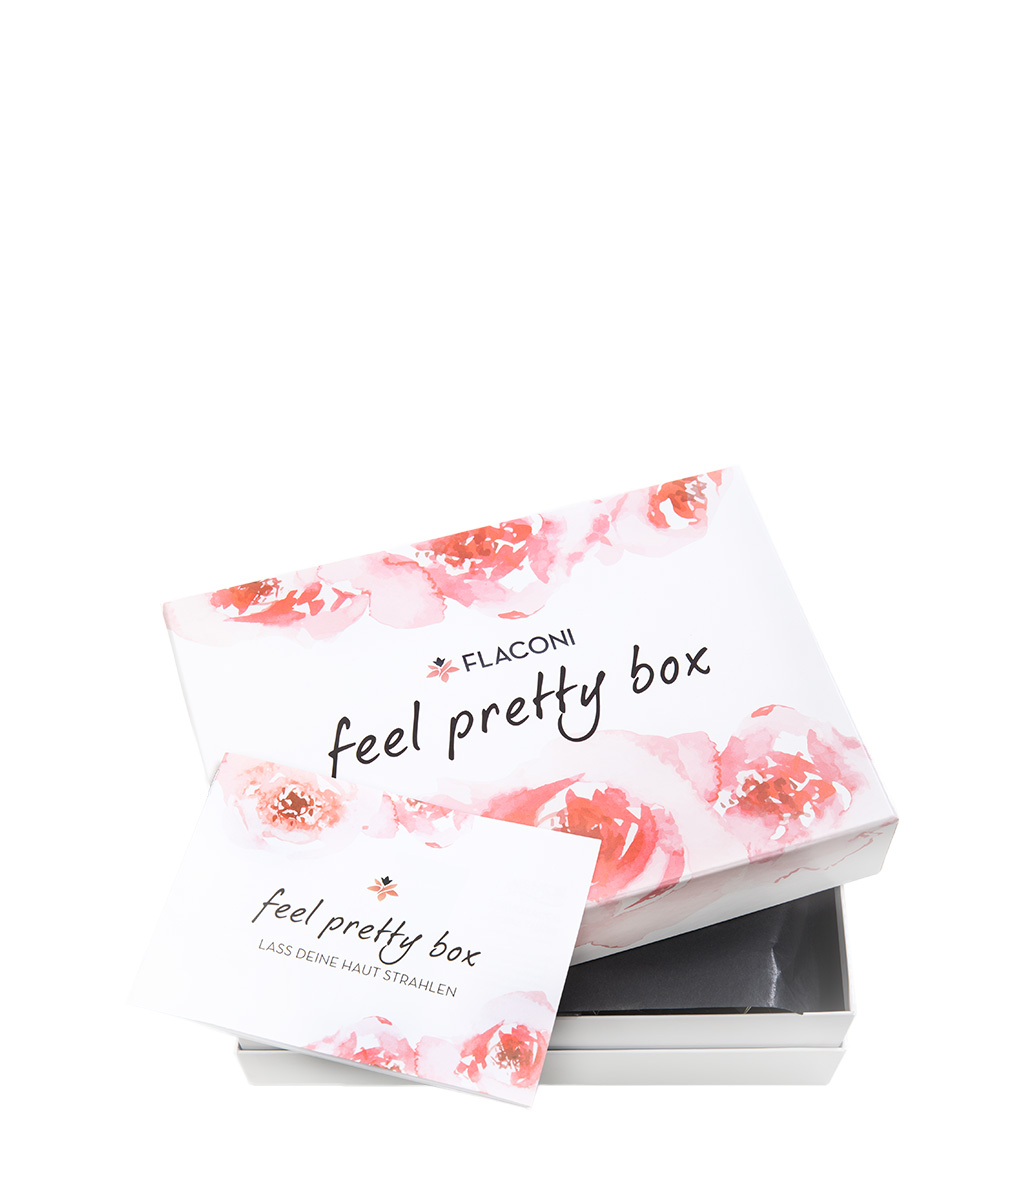 flaconi-feel-pretty-box-sommeredition-2015-ueberraschungsbox-1-stk-detail